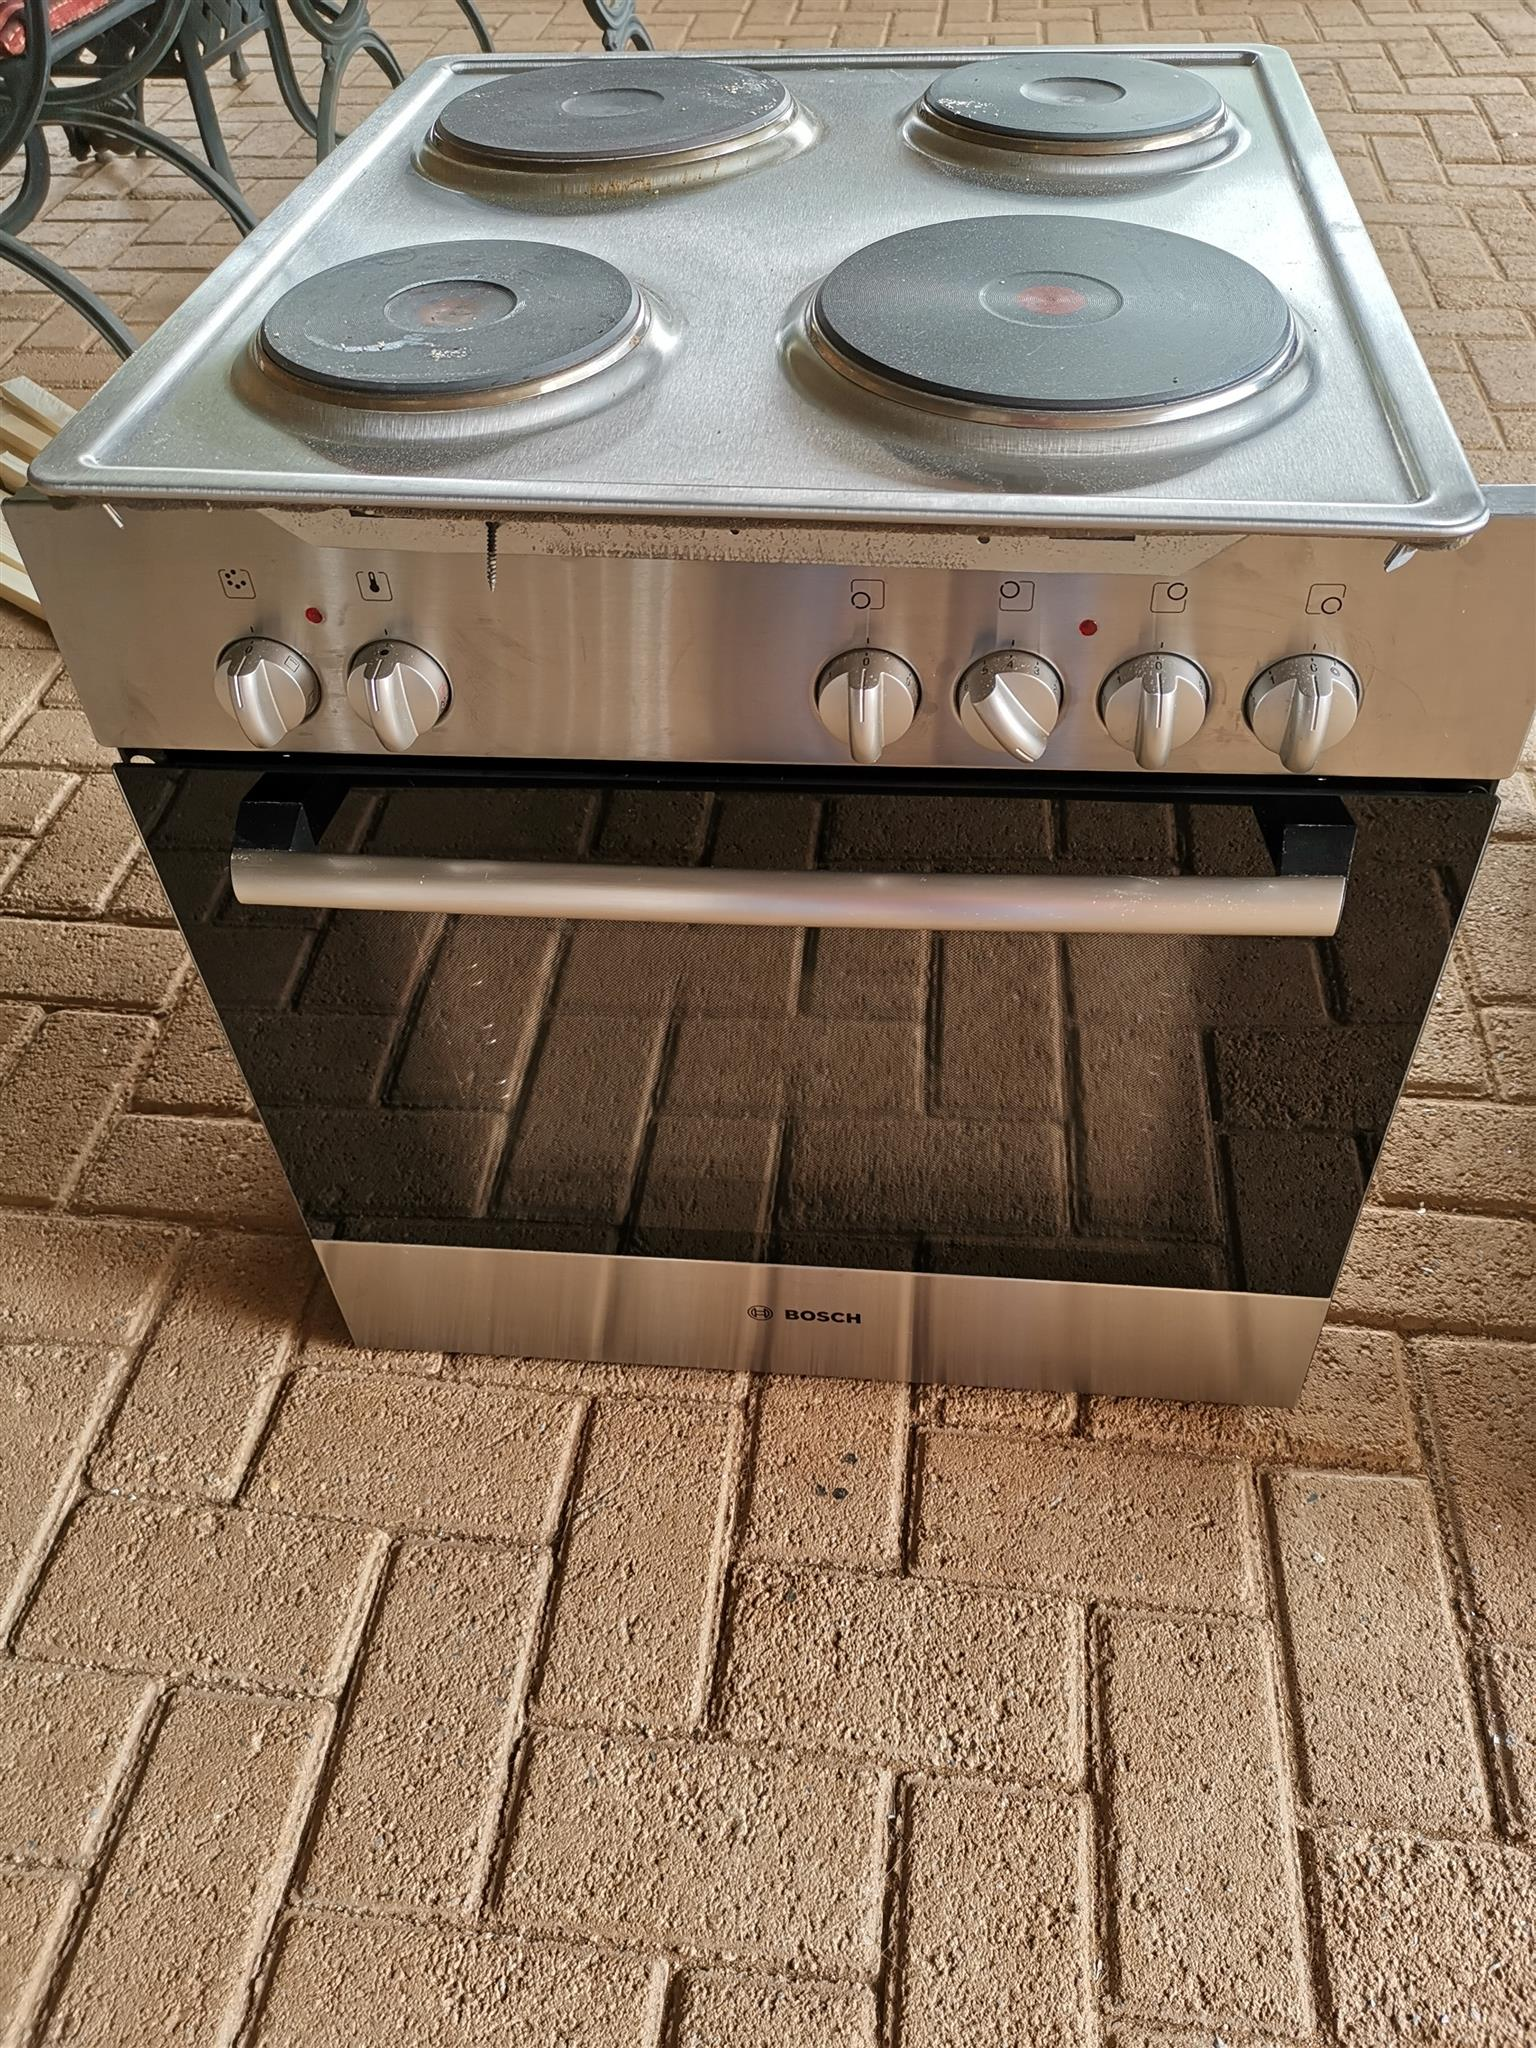 Bosch Hob and oven for sale.